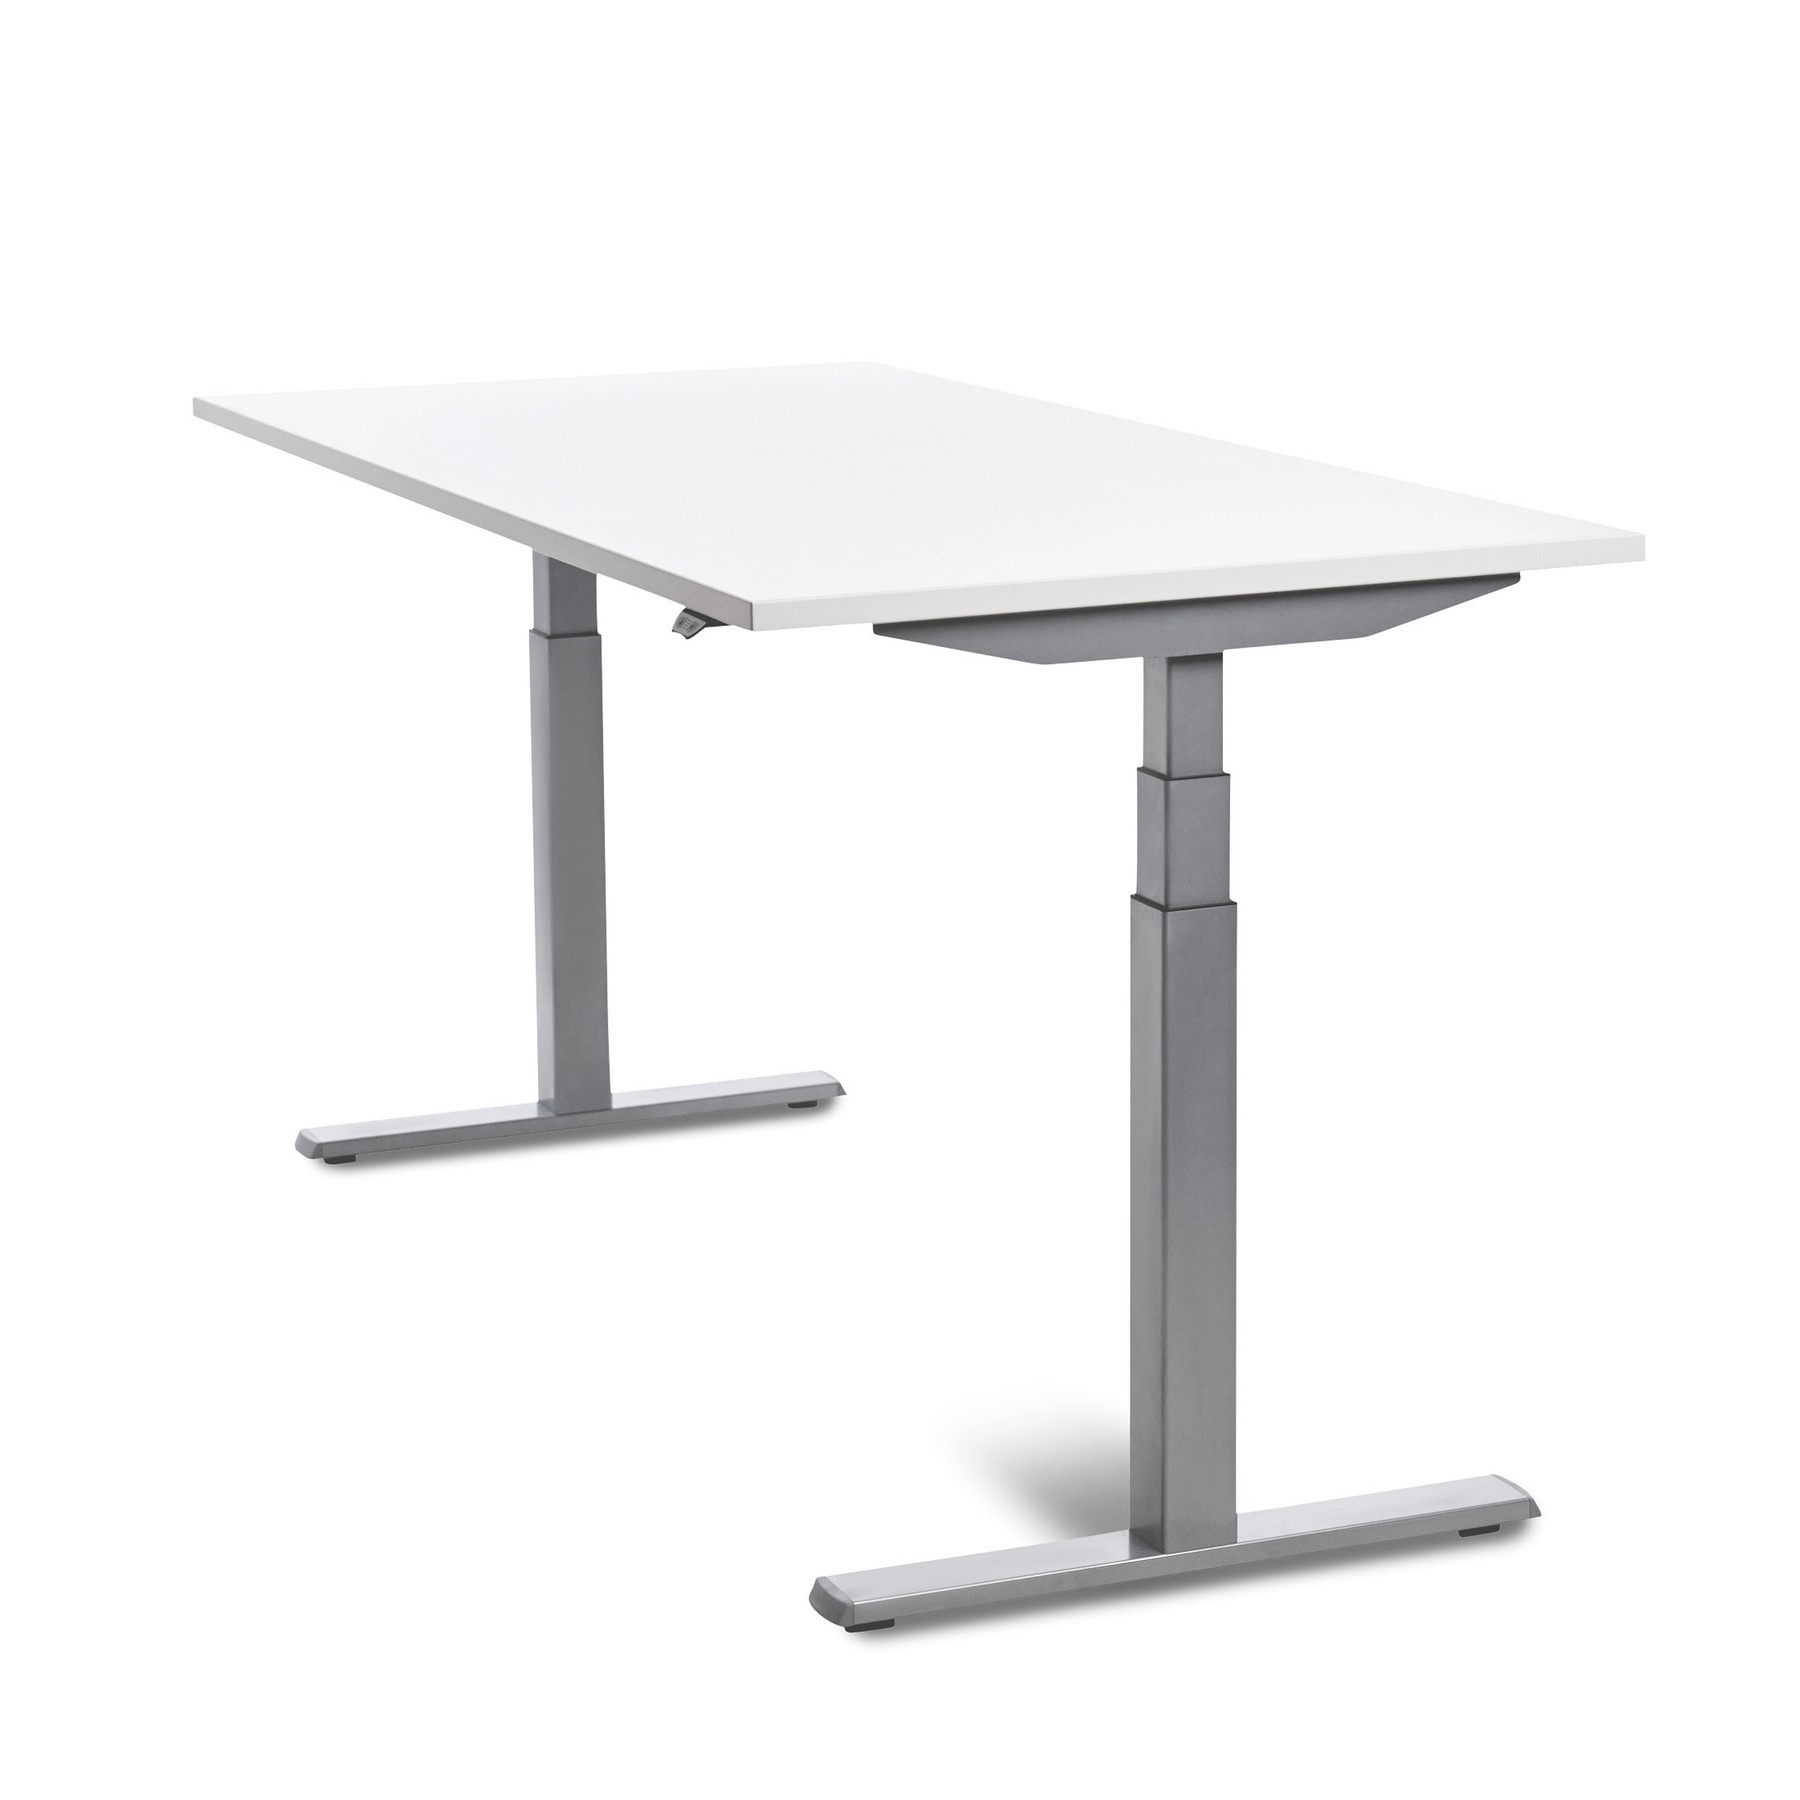 160cm HEIGHT ADJUSTABLE ELECTRICALLY DASH TABLE WHITE COLOR